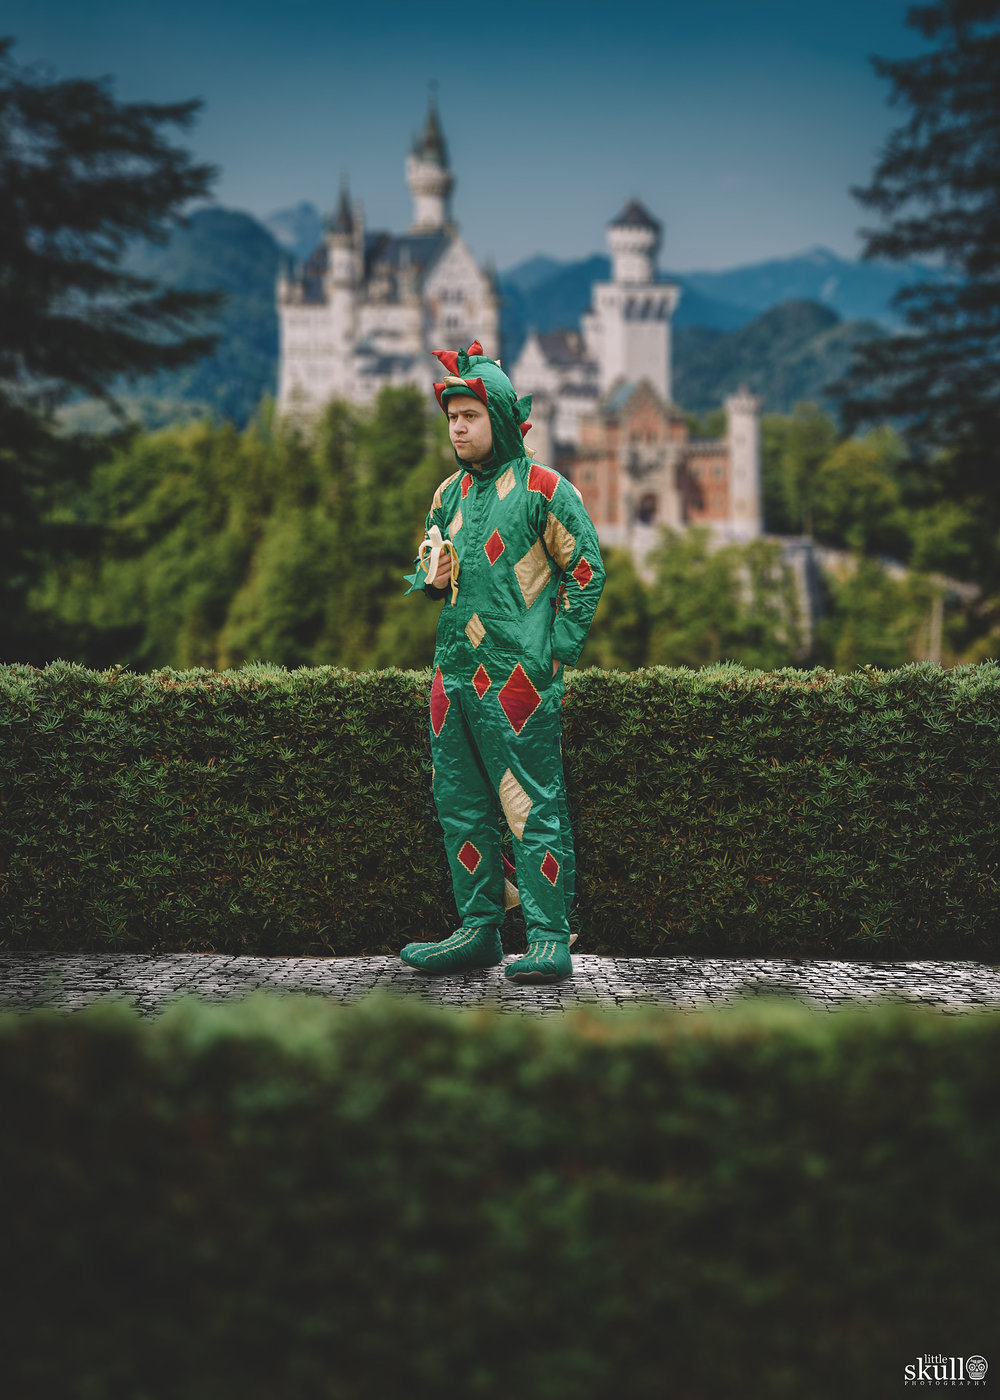 Piff The Magic Dragon outside a magical castle by Little Skull Photography